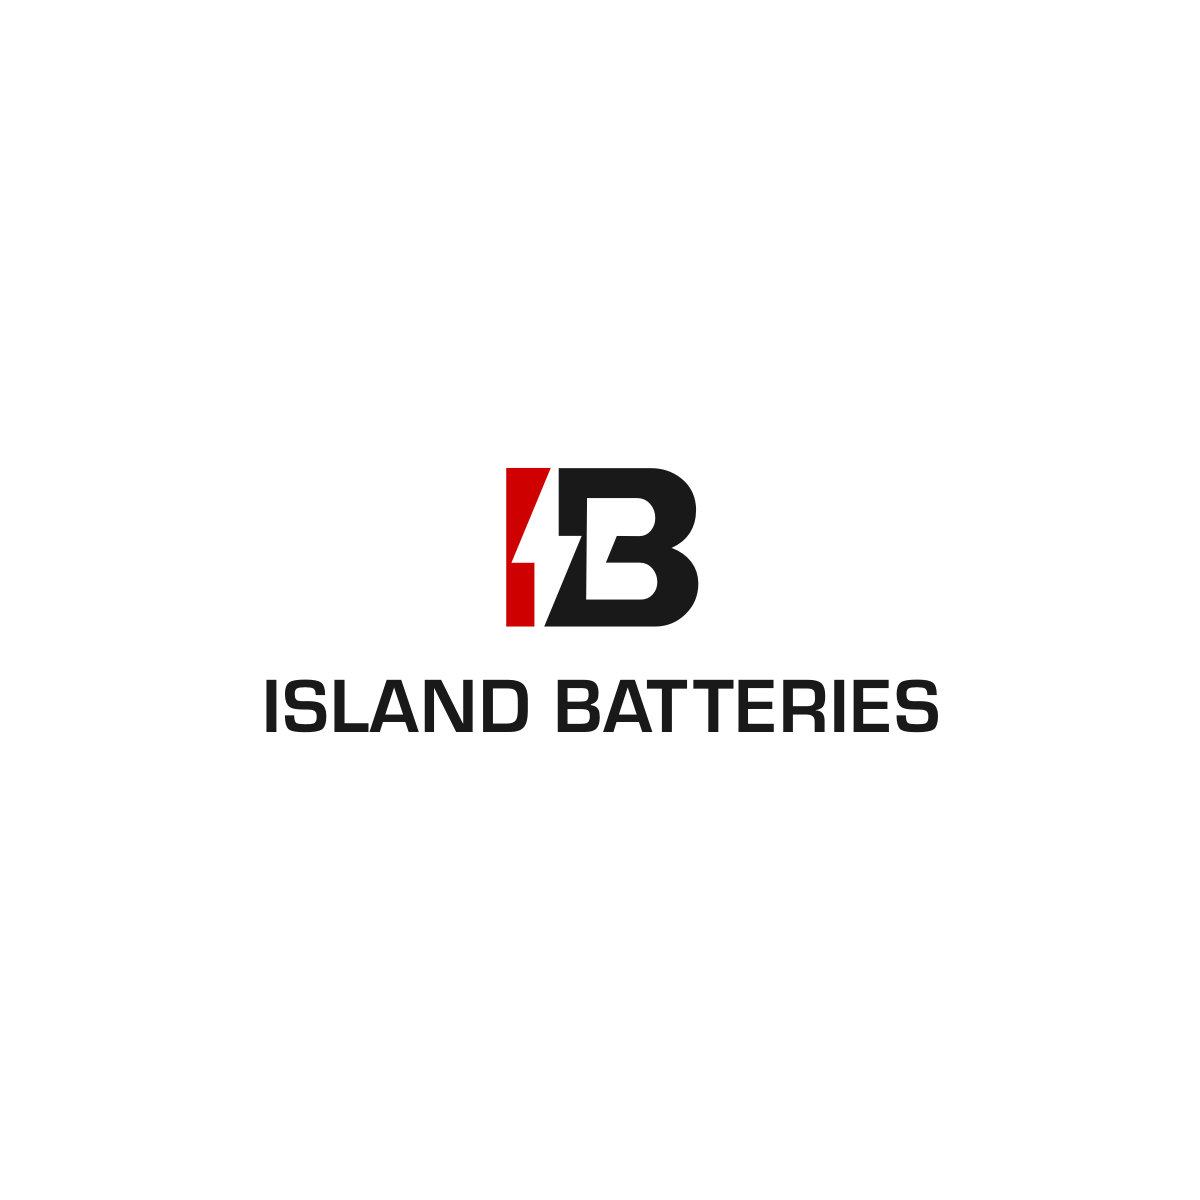 Logo Design by Hermeneutic - Entry No. 30 in the Logo Design Contest Fun Logo Design for Island Batteries.